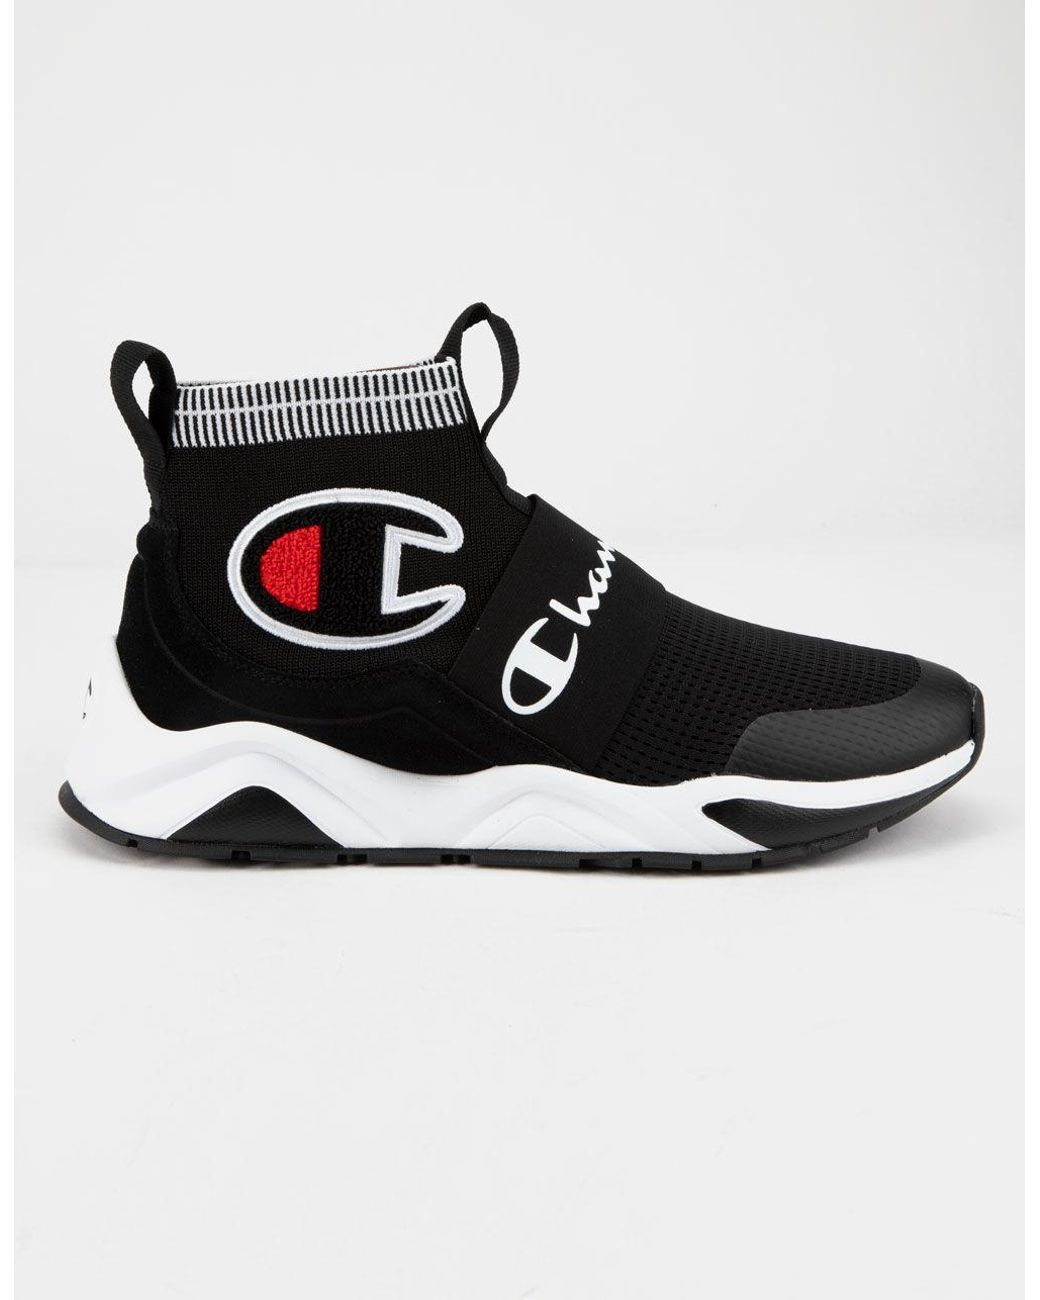 c4a3f6be899 Lyst - Champion Men s Rally Pro in Black for Men - Save 21%